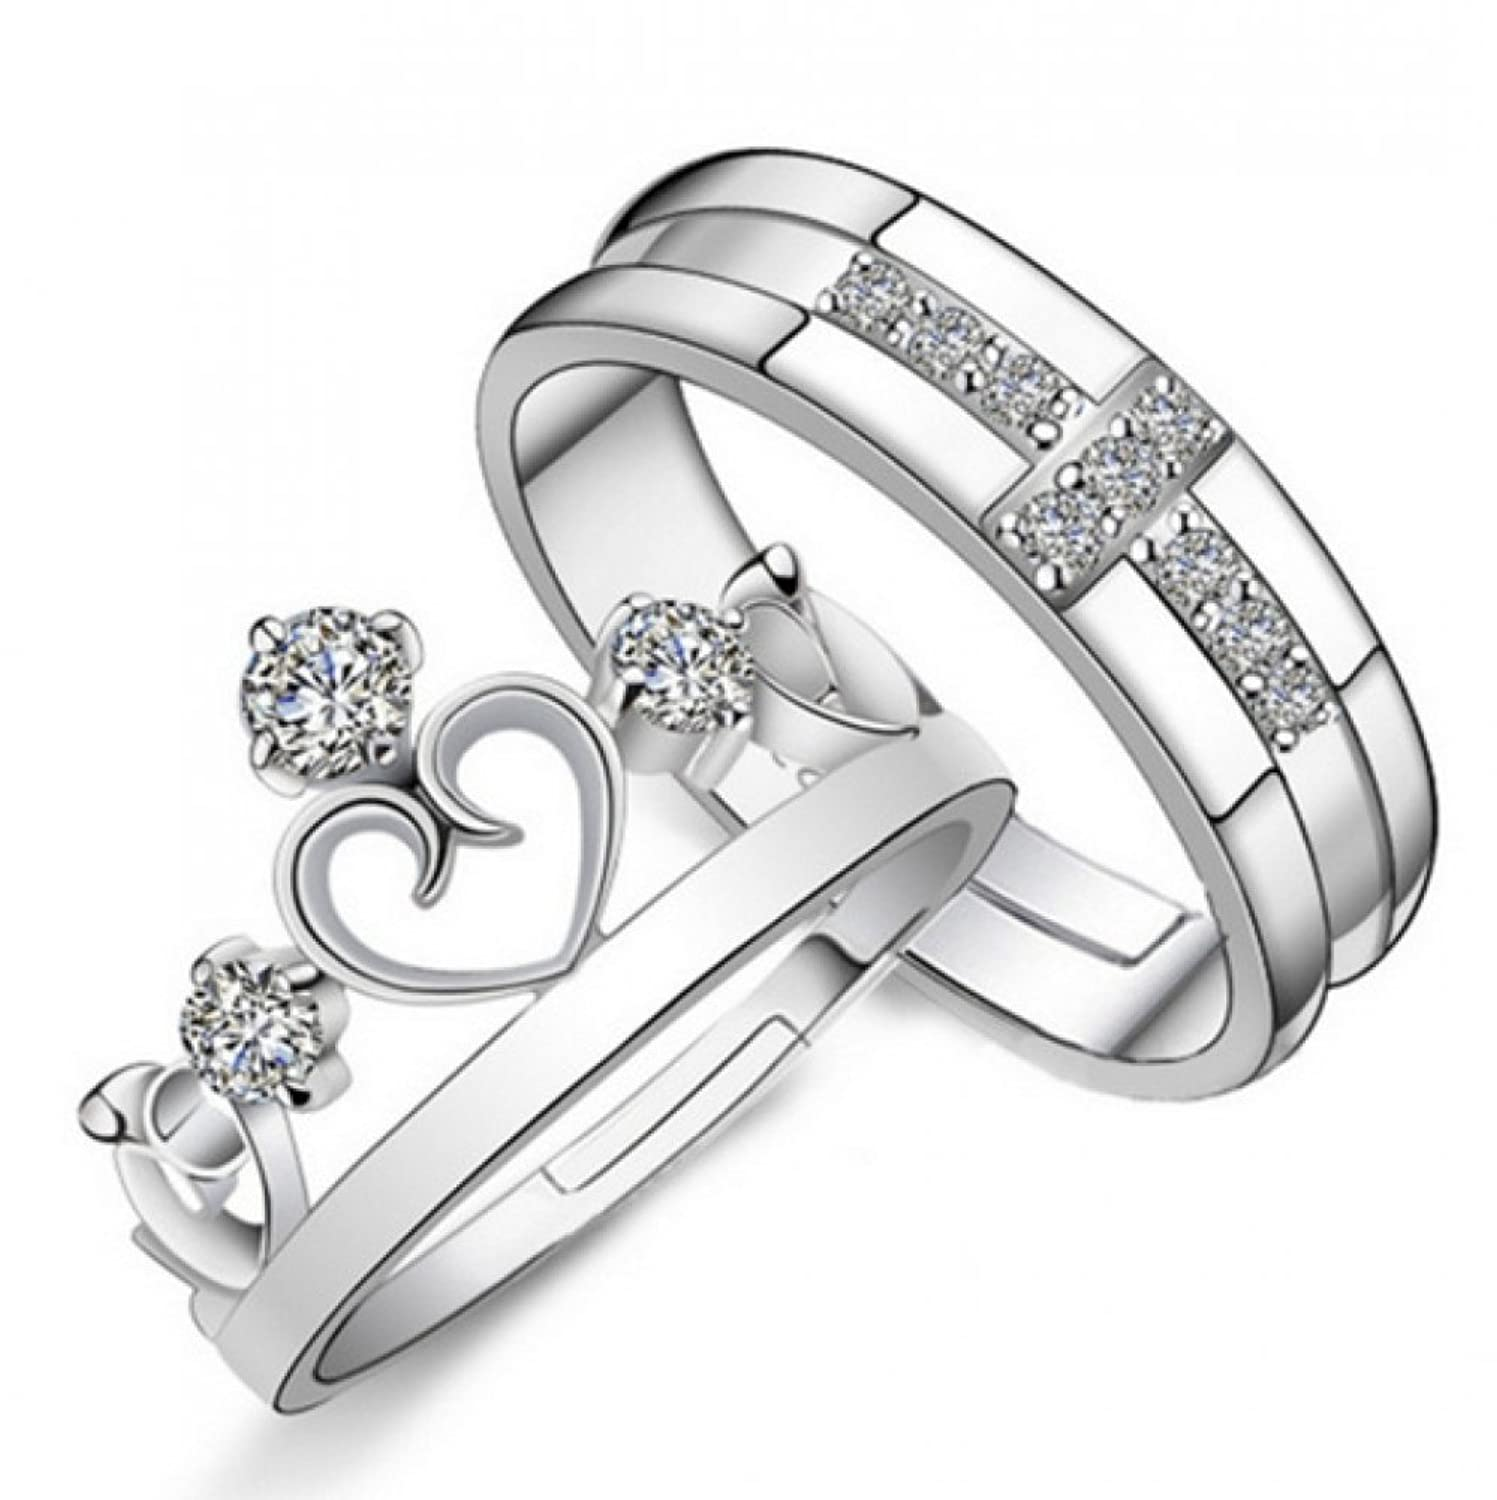 19 Likes Love Gifts Silver Metal Alloy Size Adjustable Finger Rings For Couples Women Adiva Amazonin Jewellery